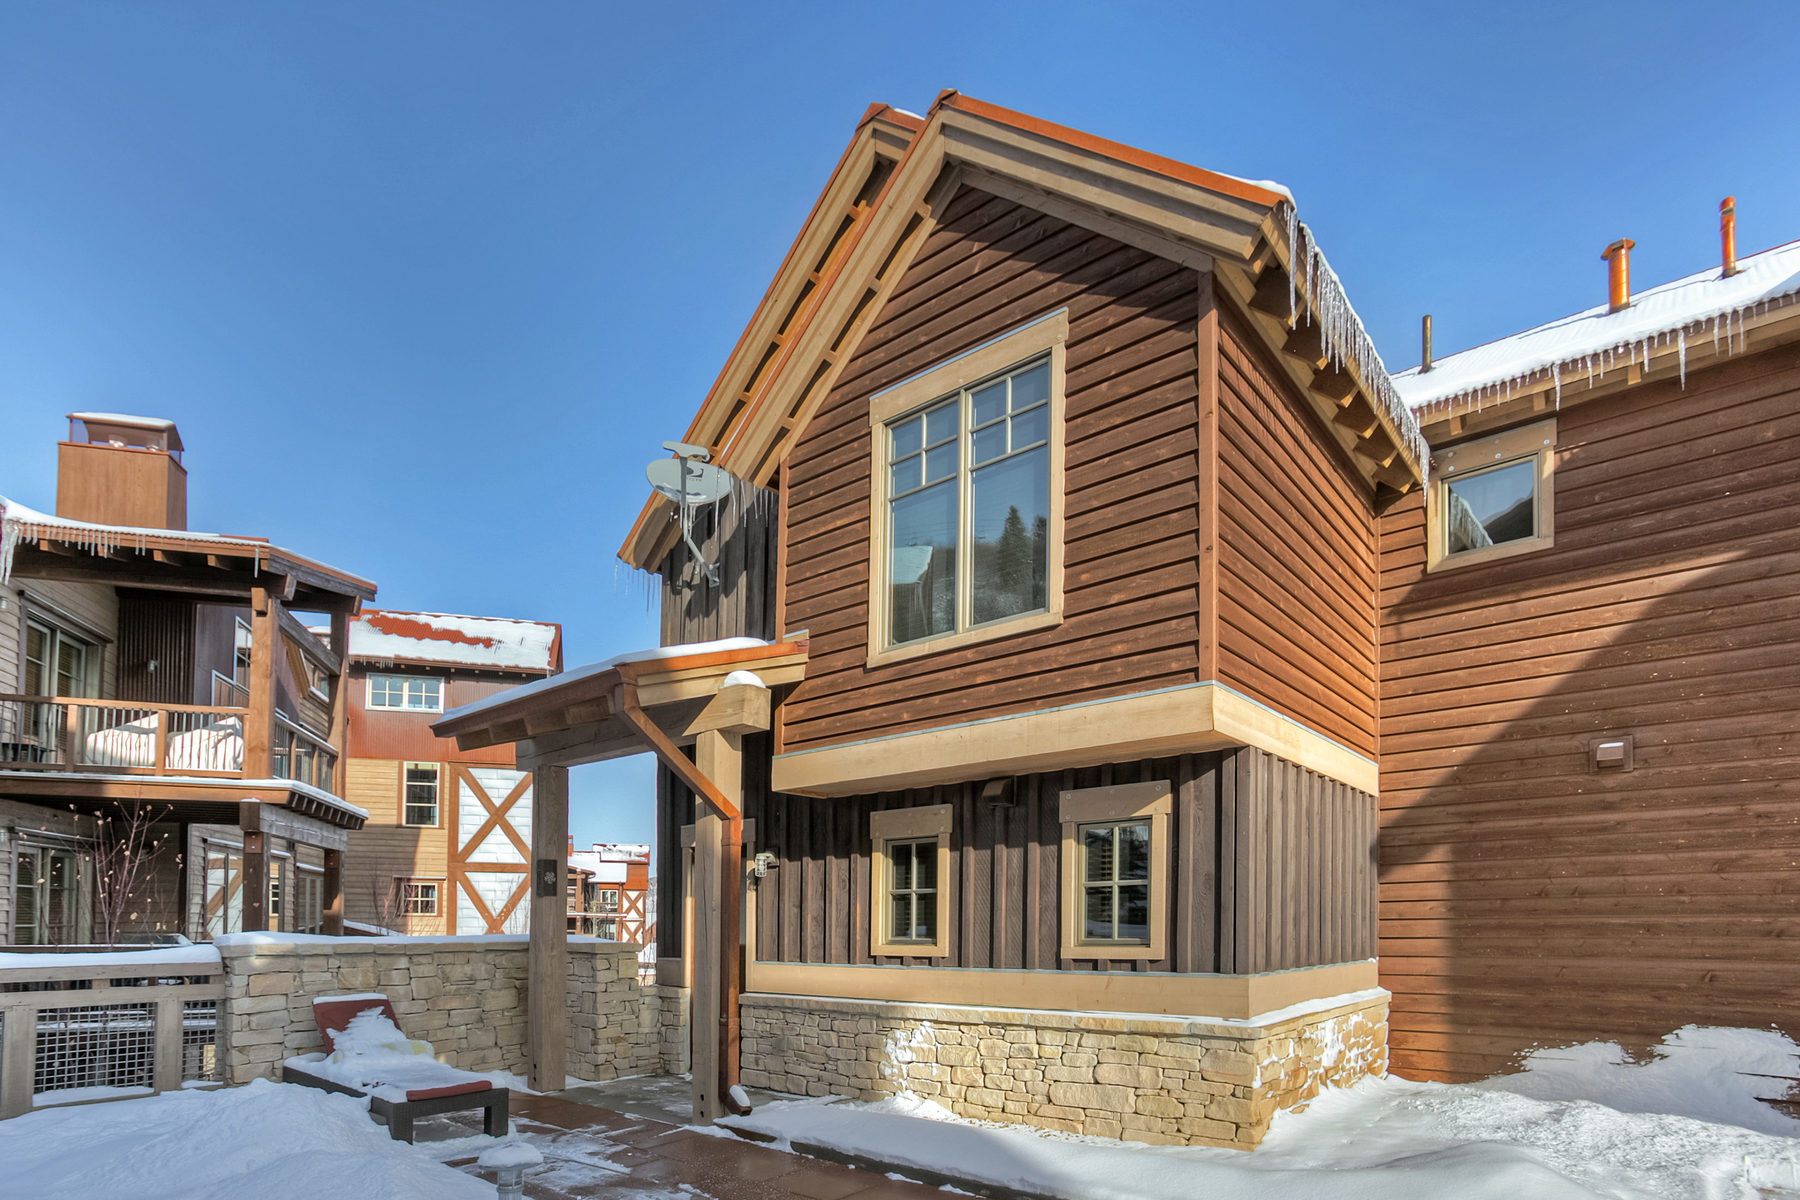 Таунхаус для того Продажа на The Perfect Ski Residence in Park City 1825 Three Kings Dr #303 Park City, Юта, 84060 Соединенные Штаты